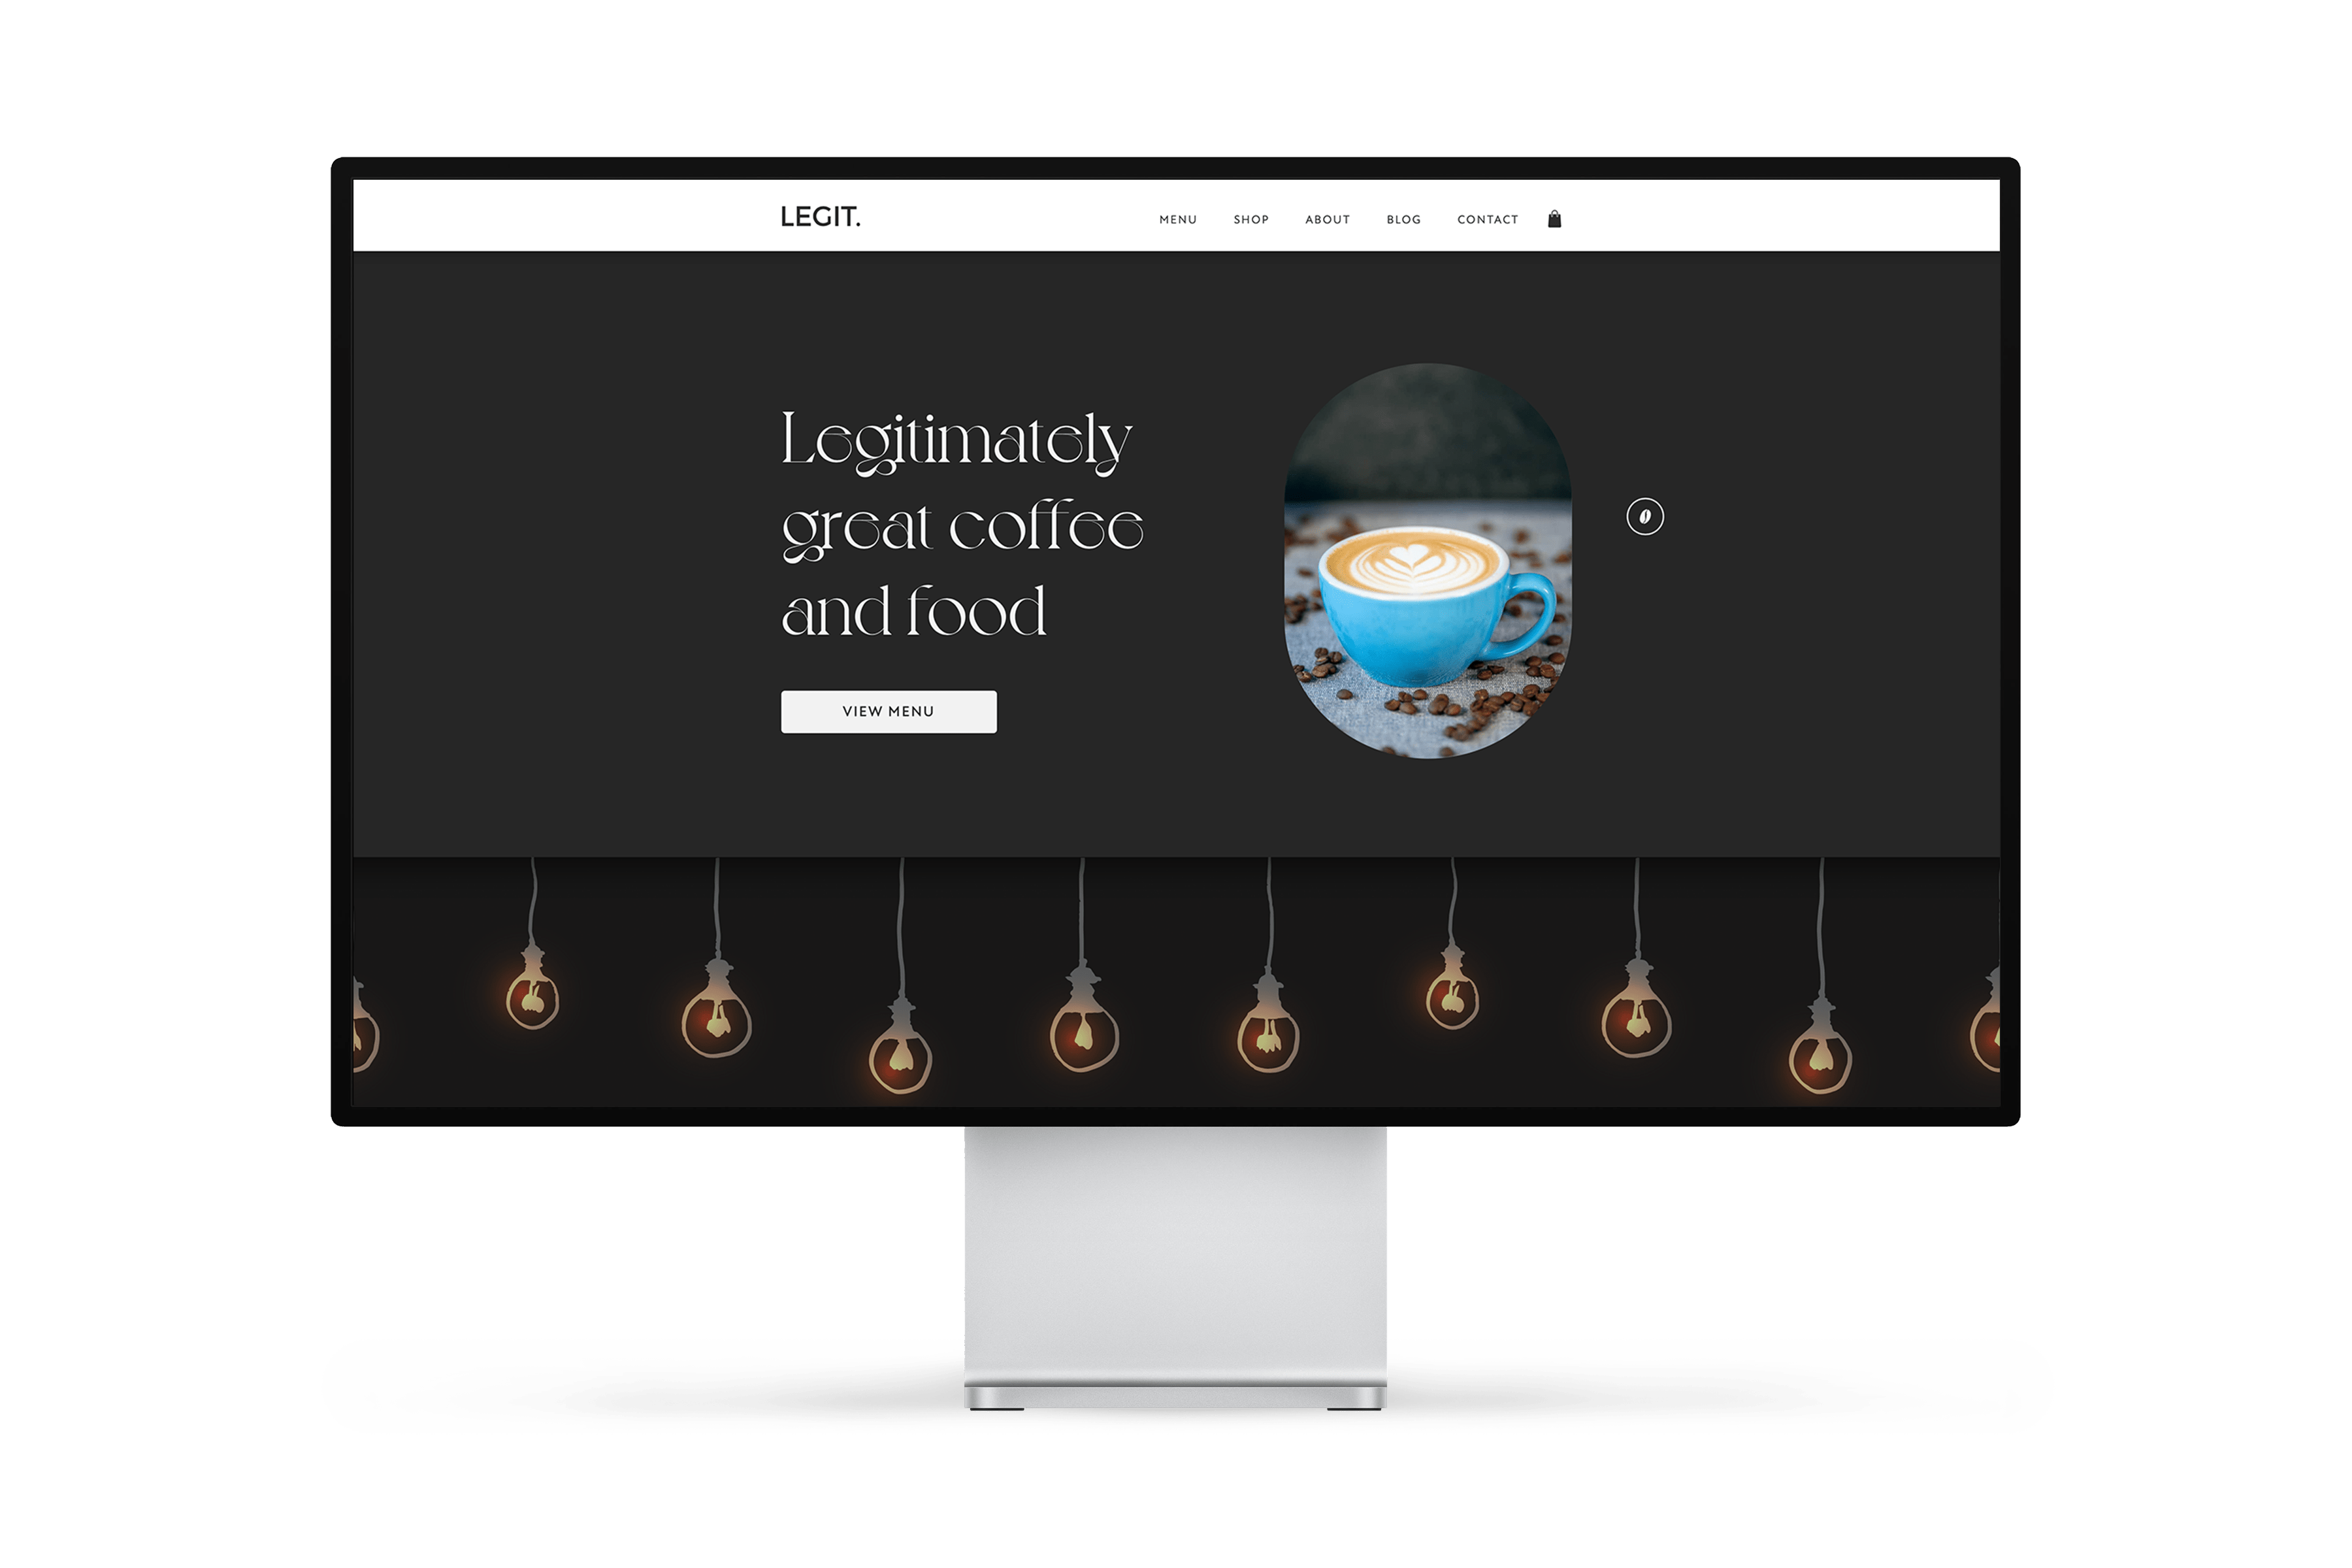 Aidan Quigley's web design mockup for legit coffee co with the text 'legitimately great food and coffee' in an elegant serif font alongside a picture of a coffee cup and illustrations of filament bulbs